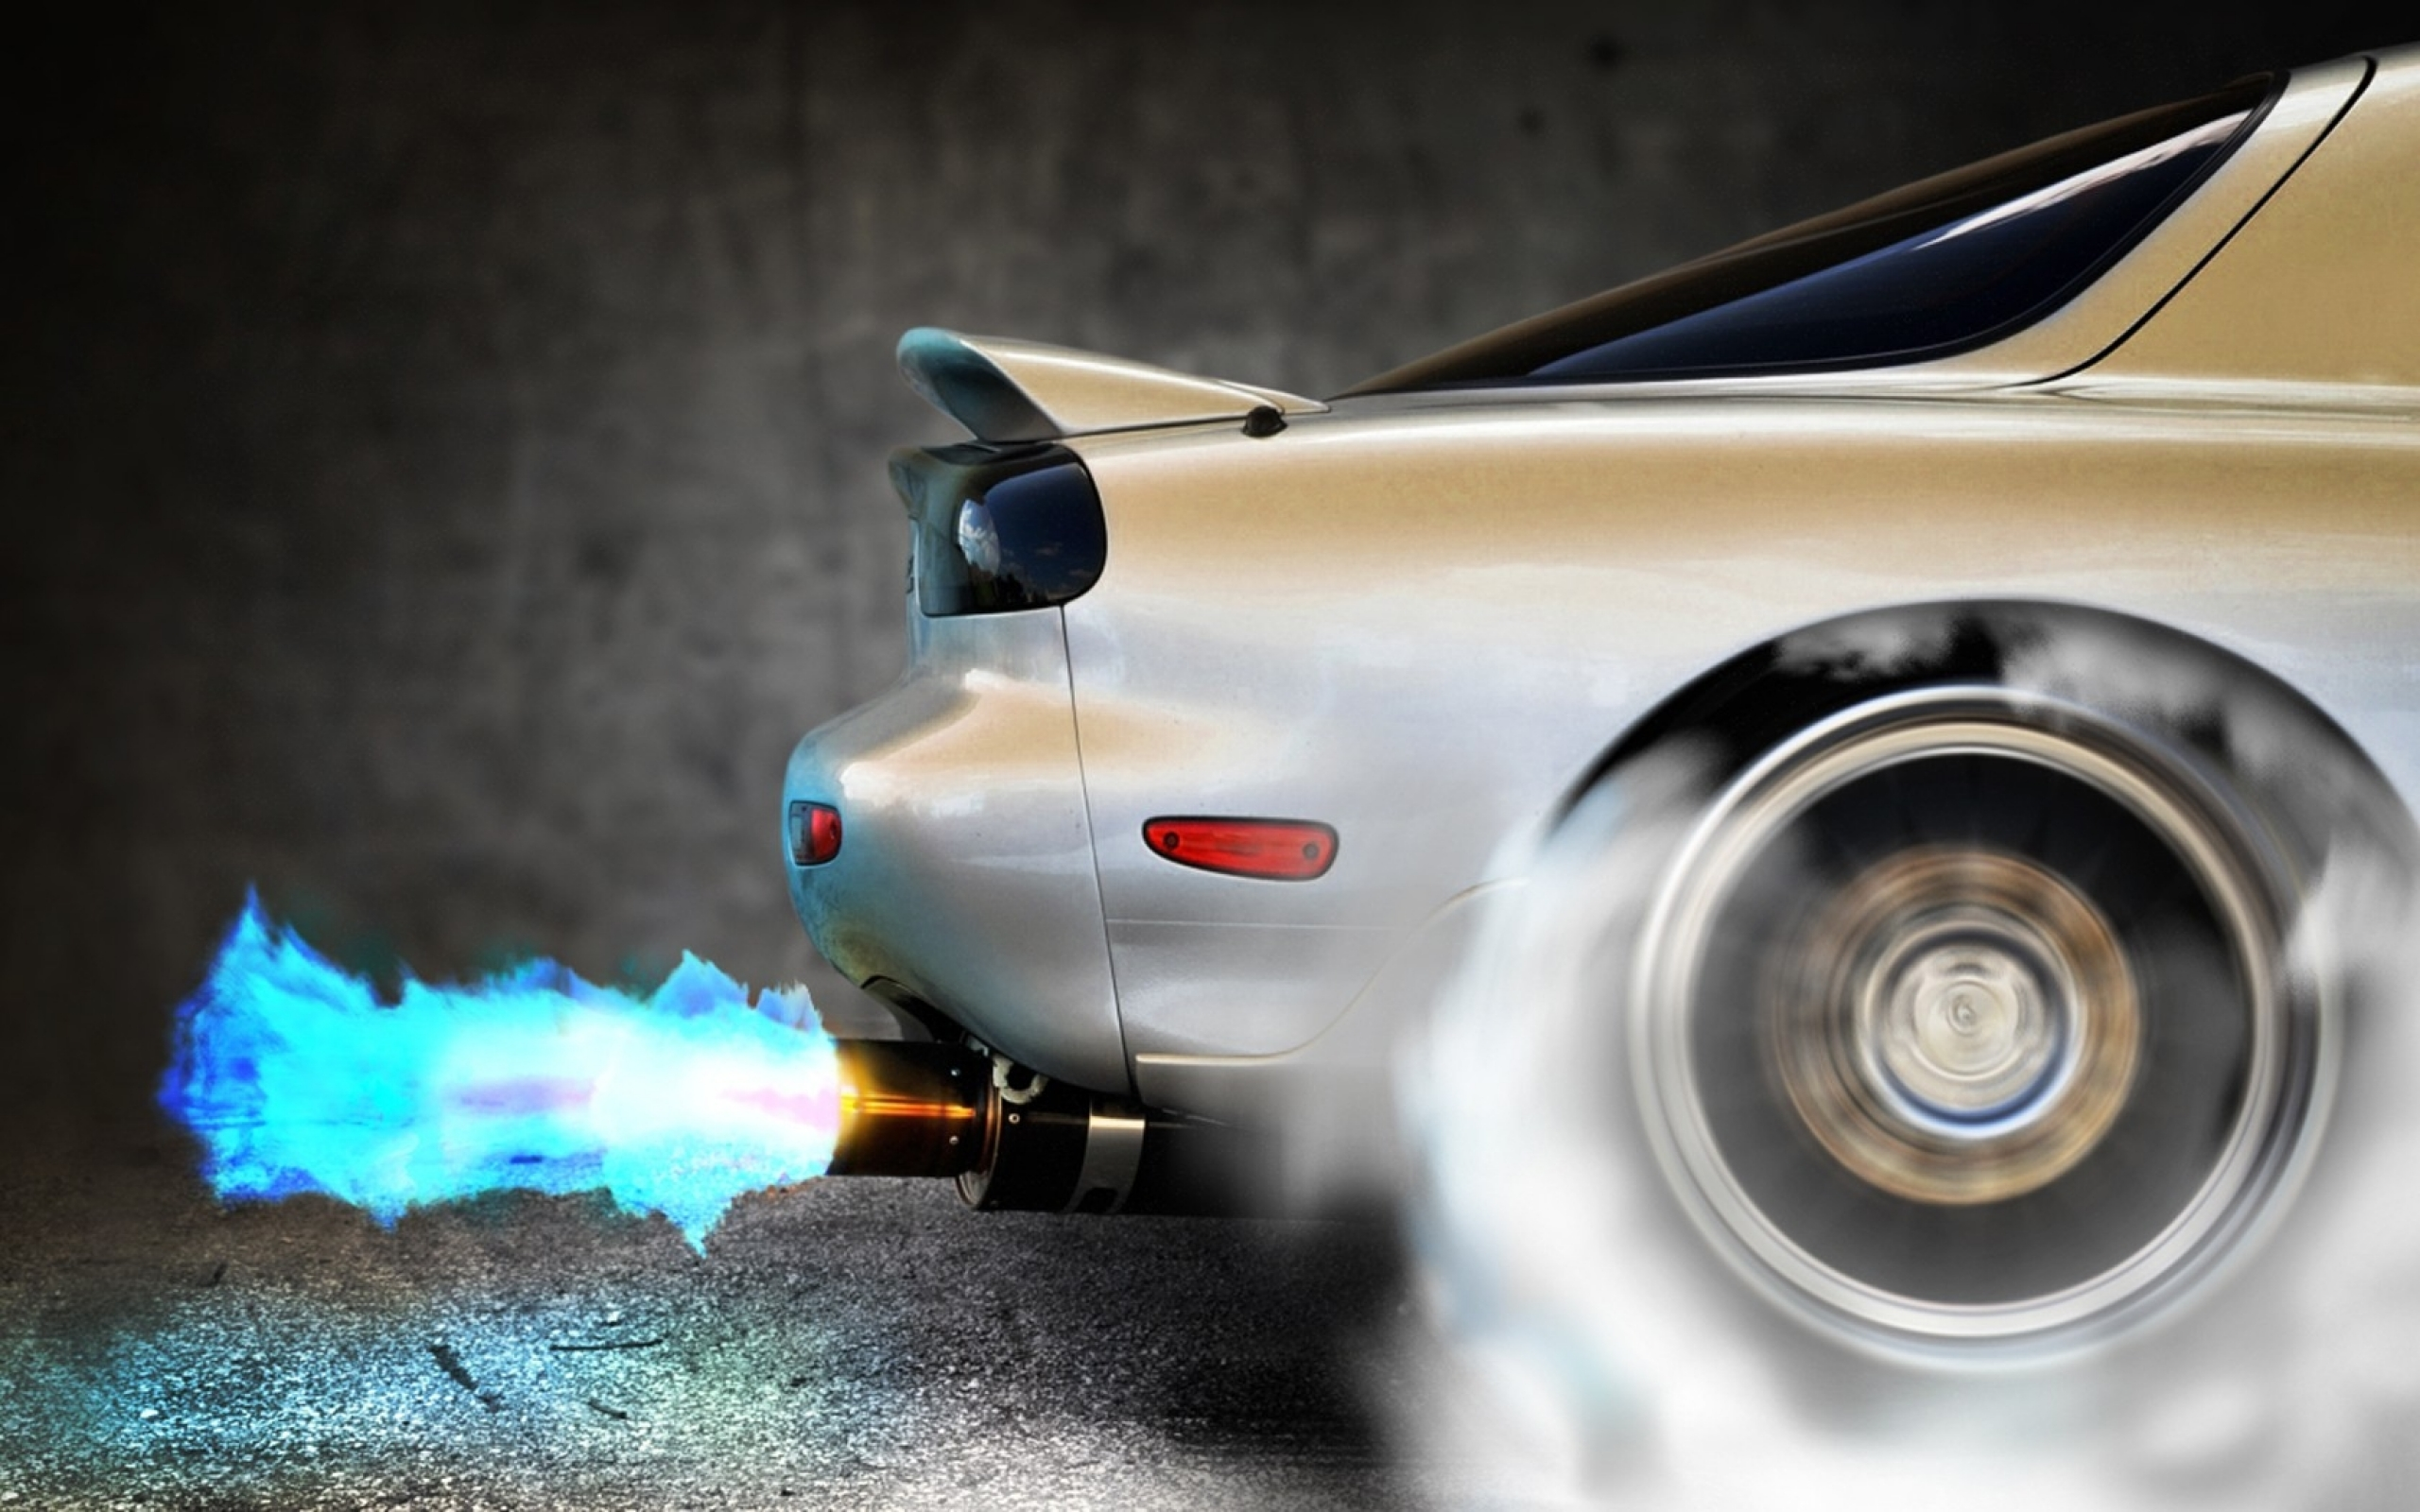 Download Burnout Wallpapers 30273 2560x1600 Px High Definition